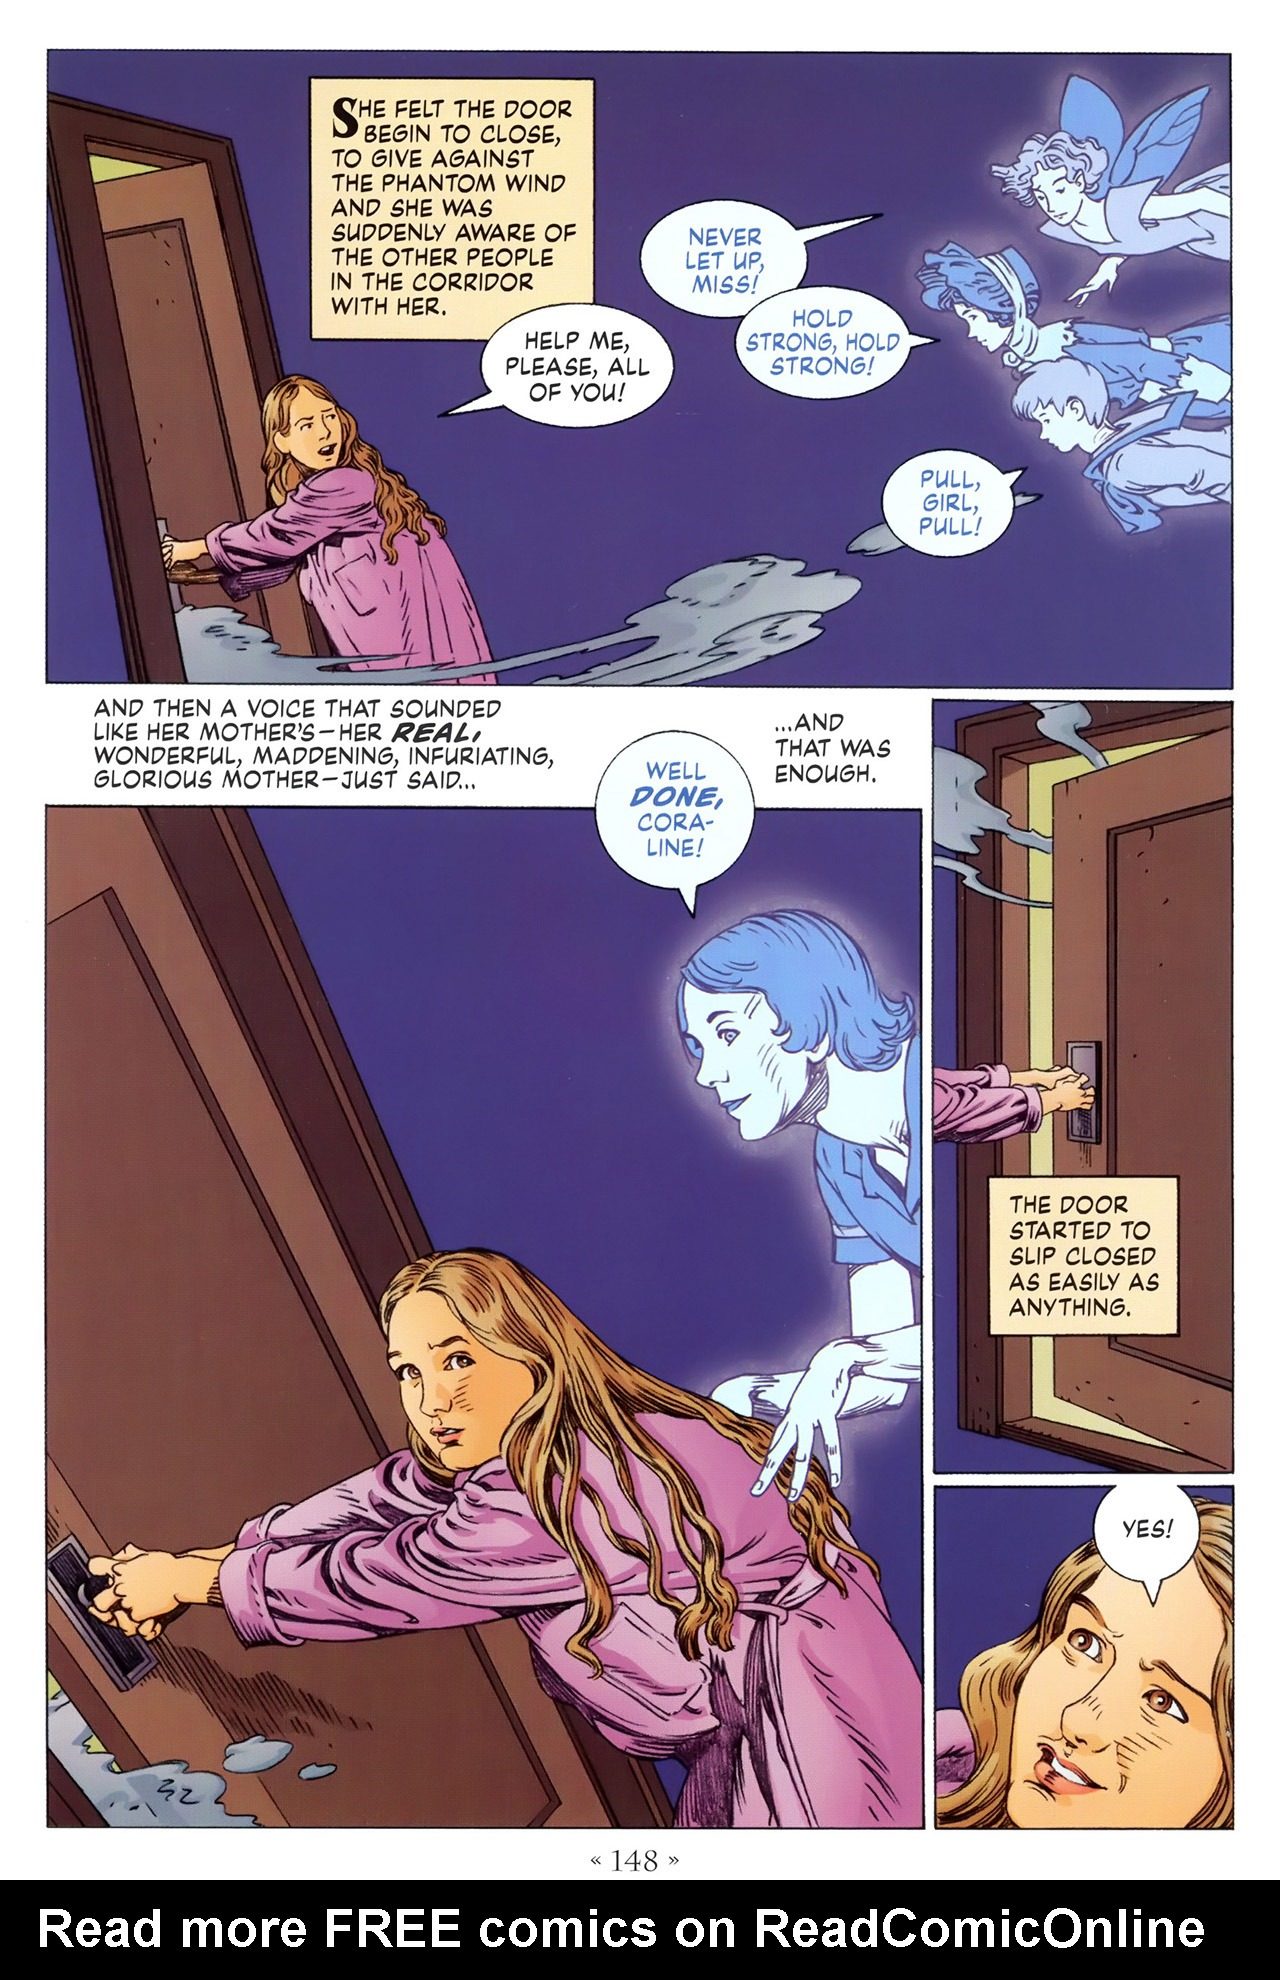 Read online Coraline comic -  Issue #1 - 154